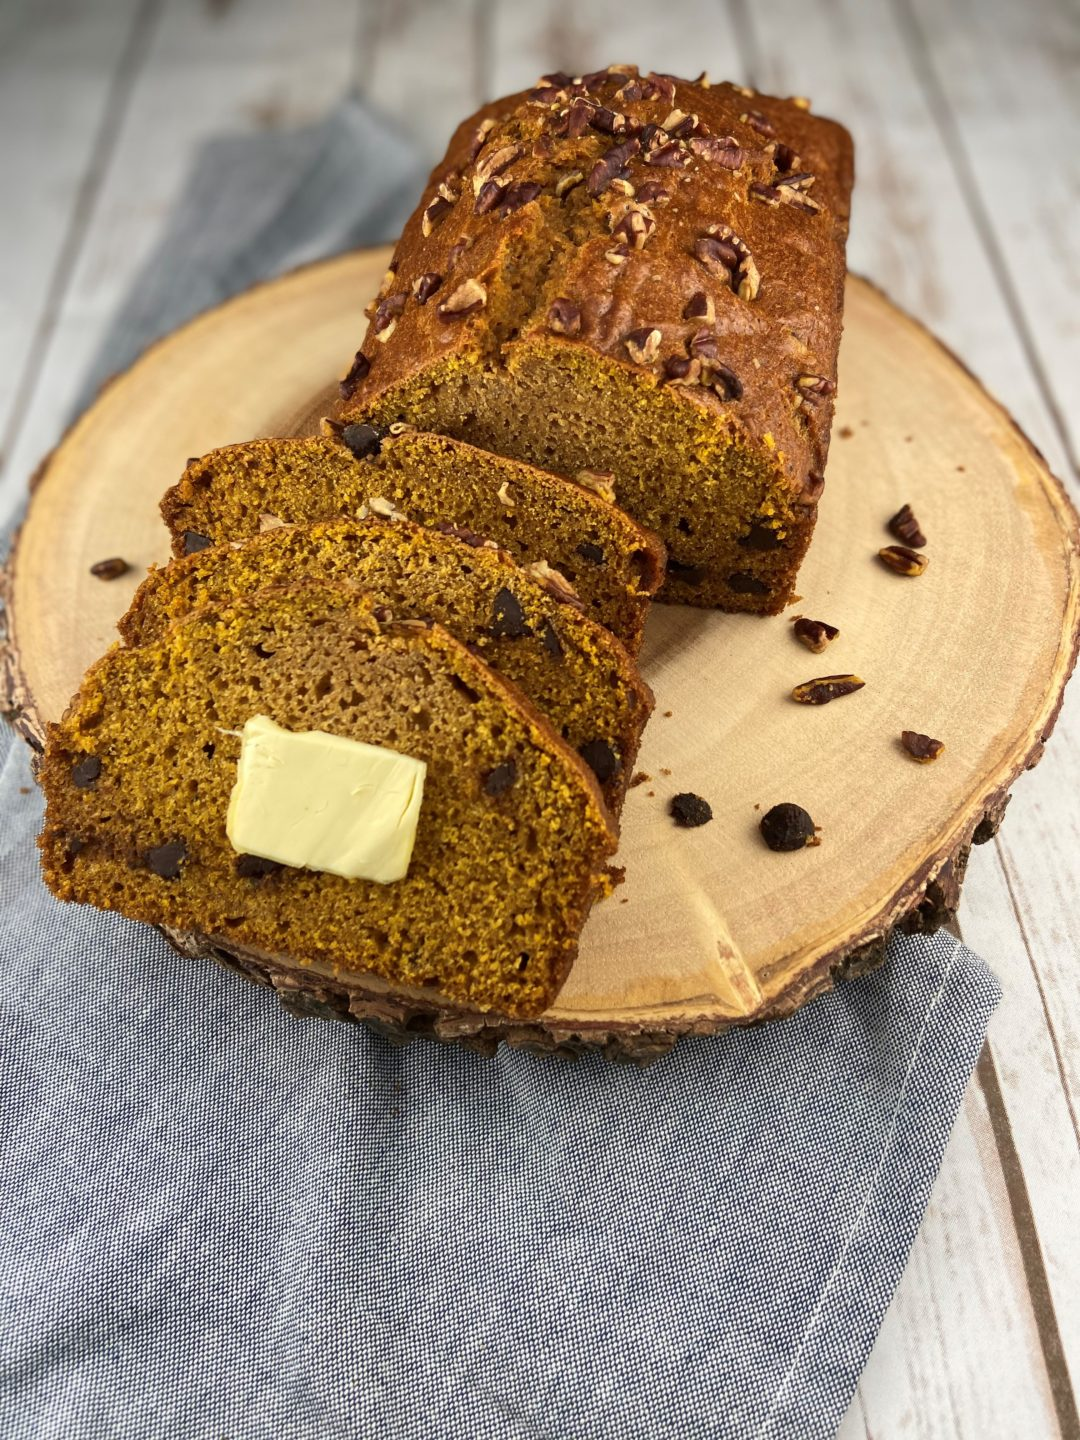 FODMAP diet bread - Gluten-Free Pumpkin Chocolate Chip Bread